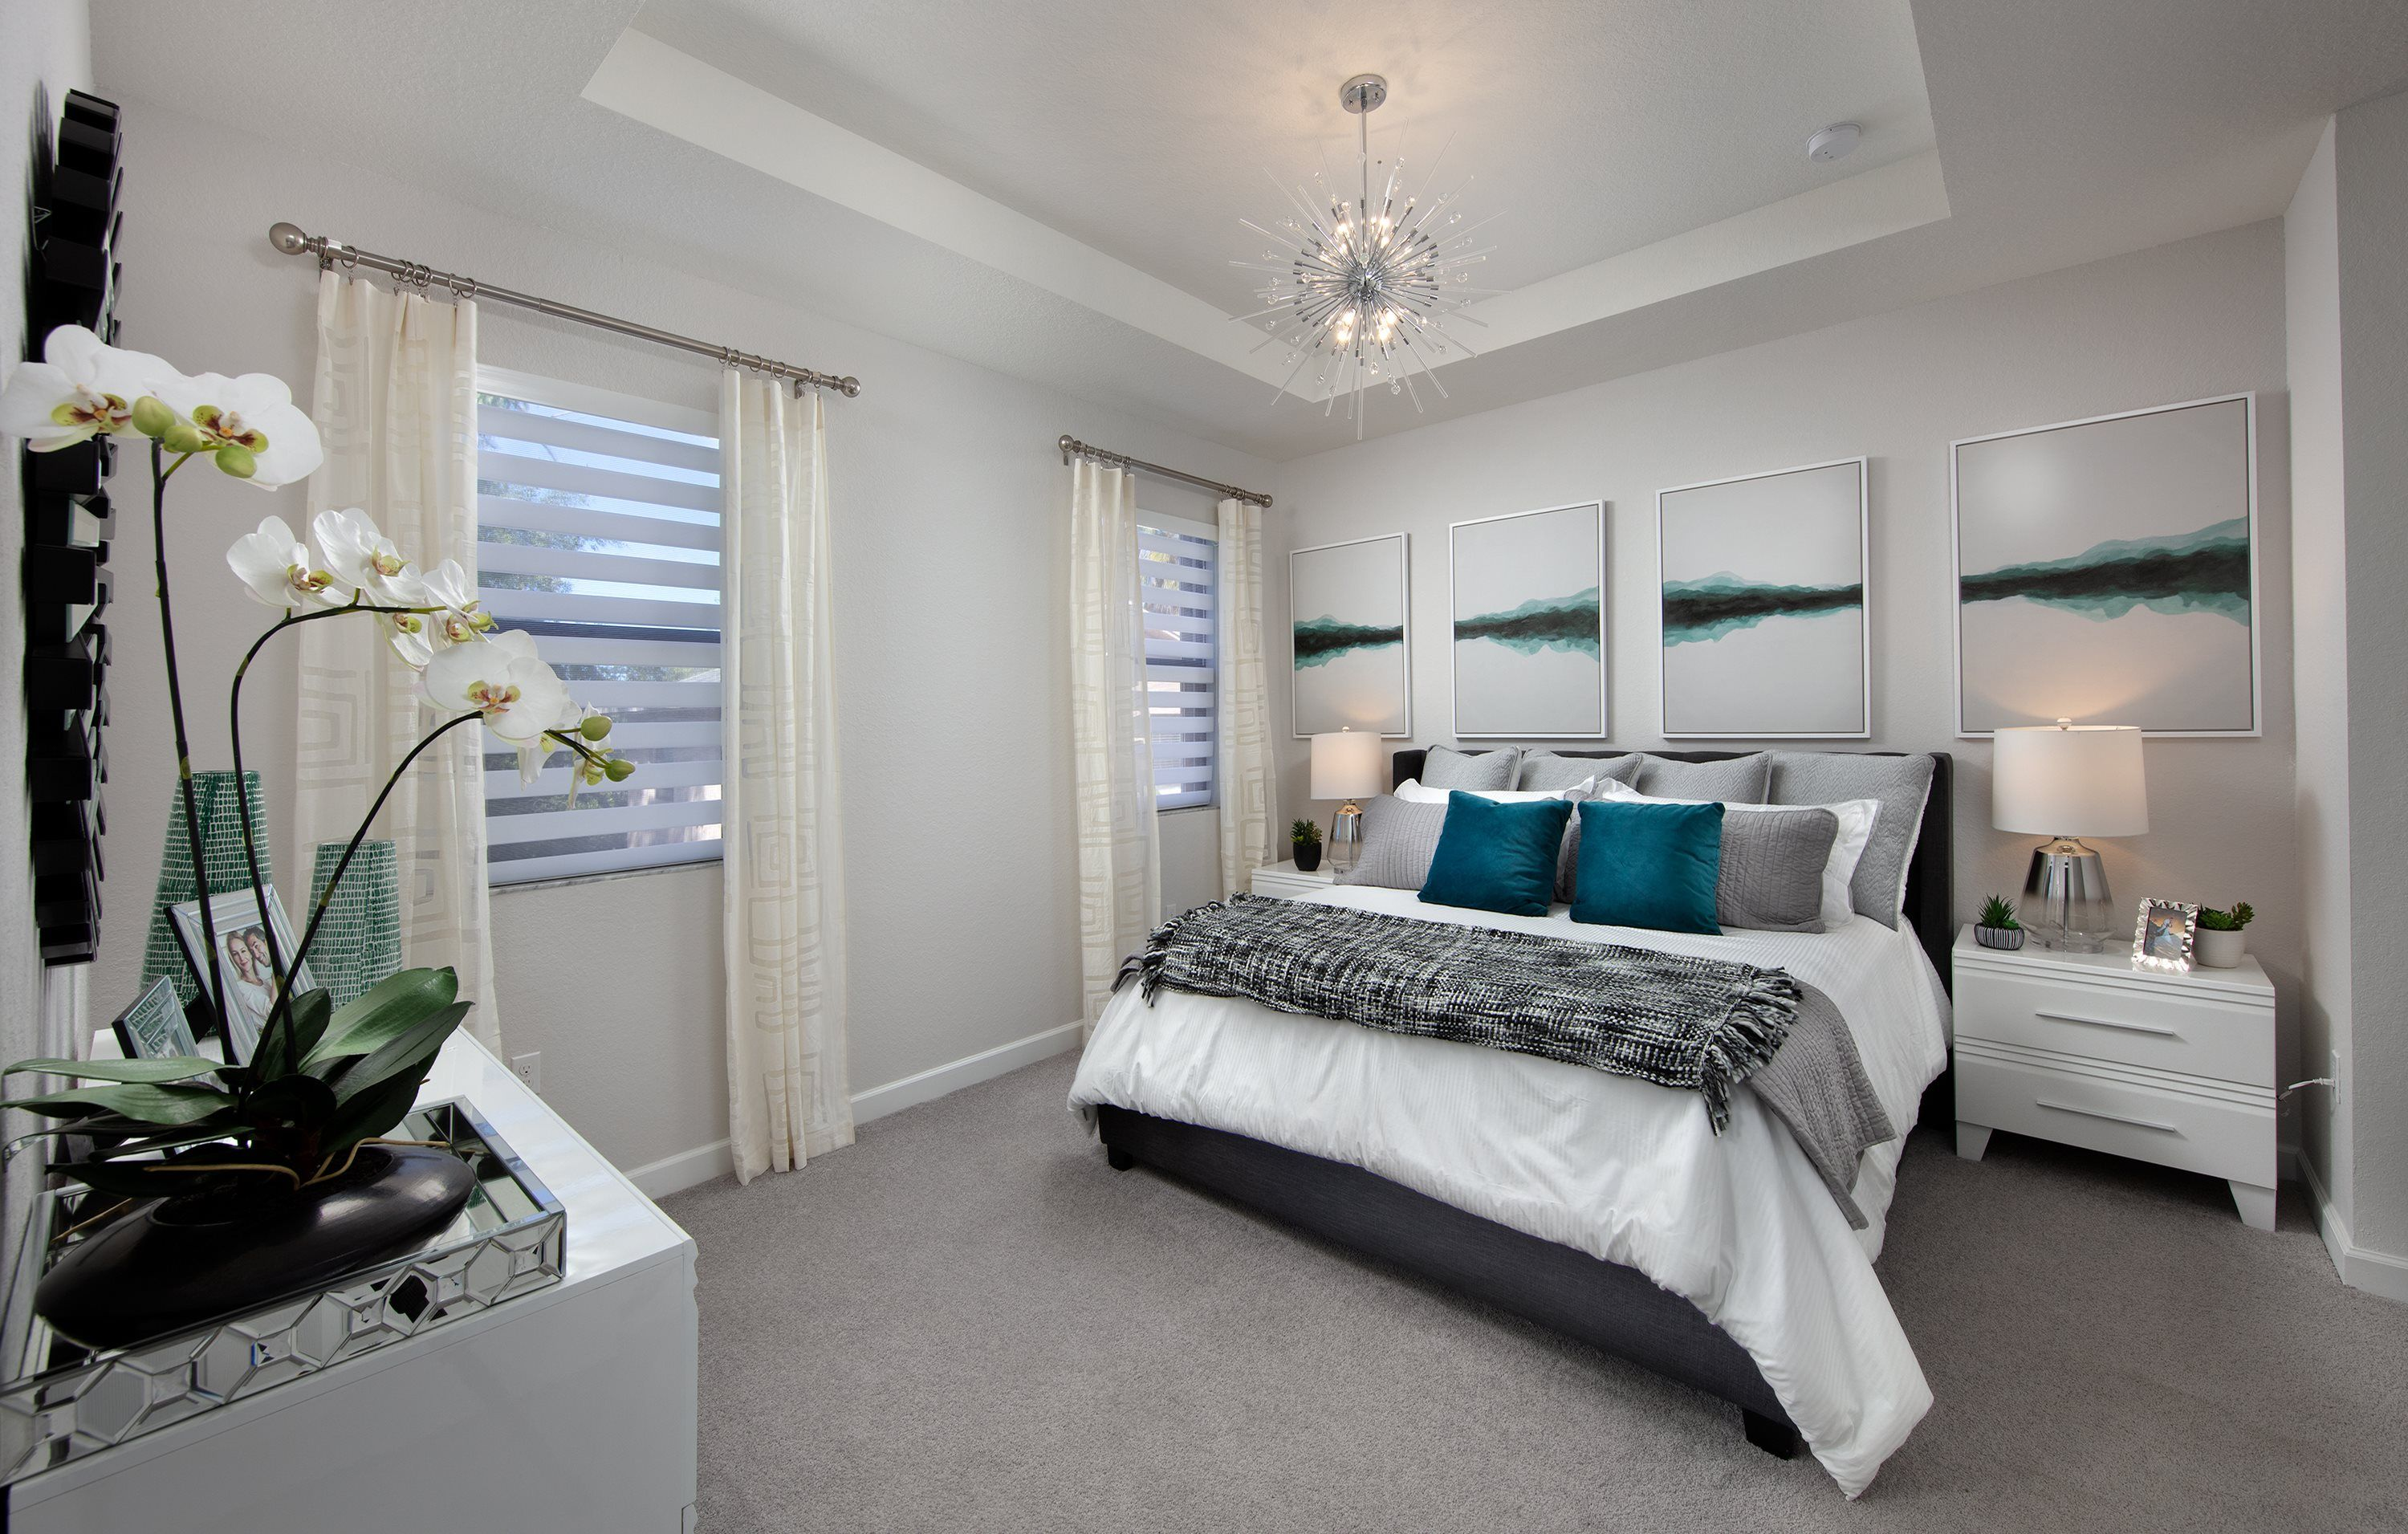 Bedroom featured in the Model B By Lennar in Broward County-Ft. Lauderdale, FL